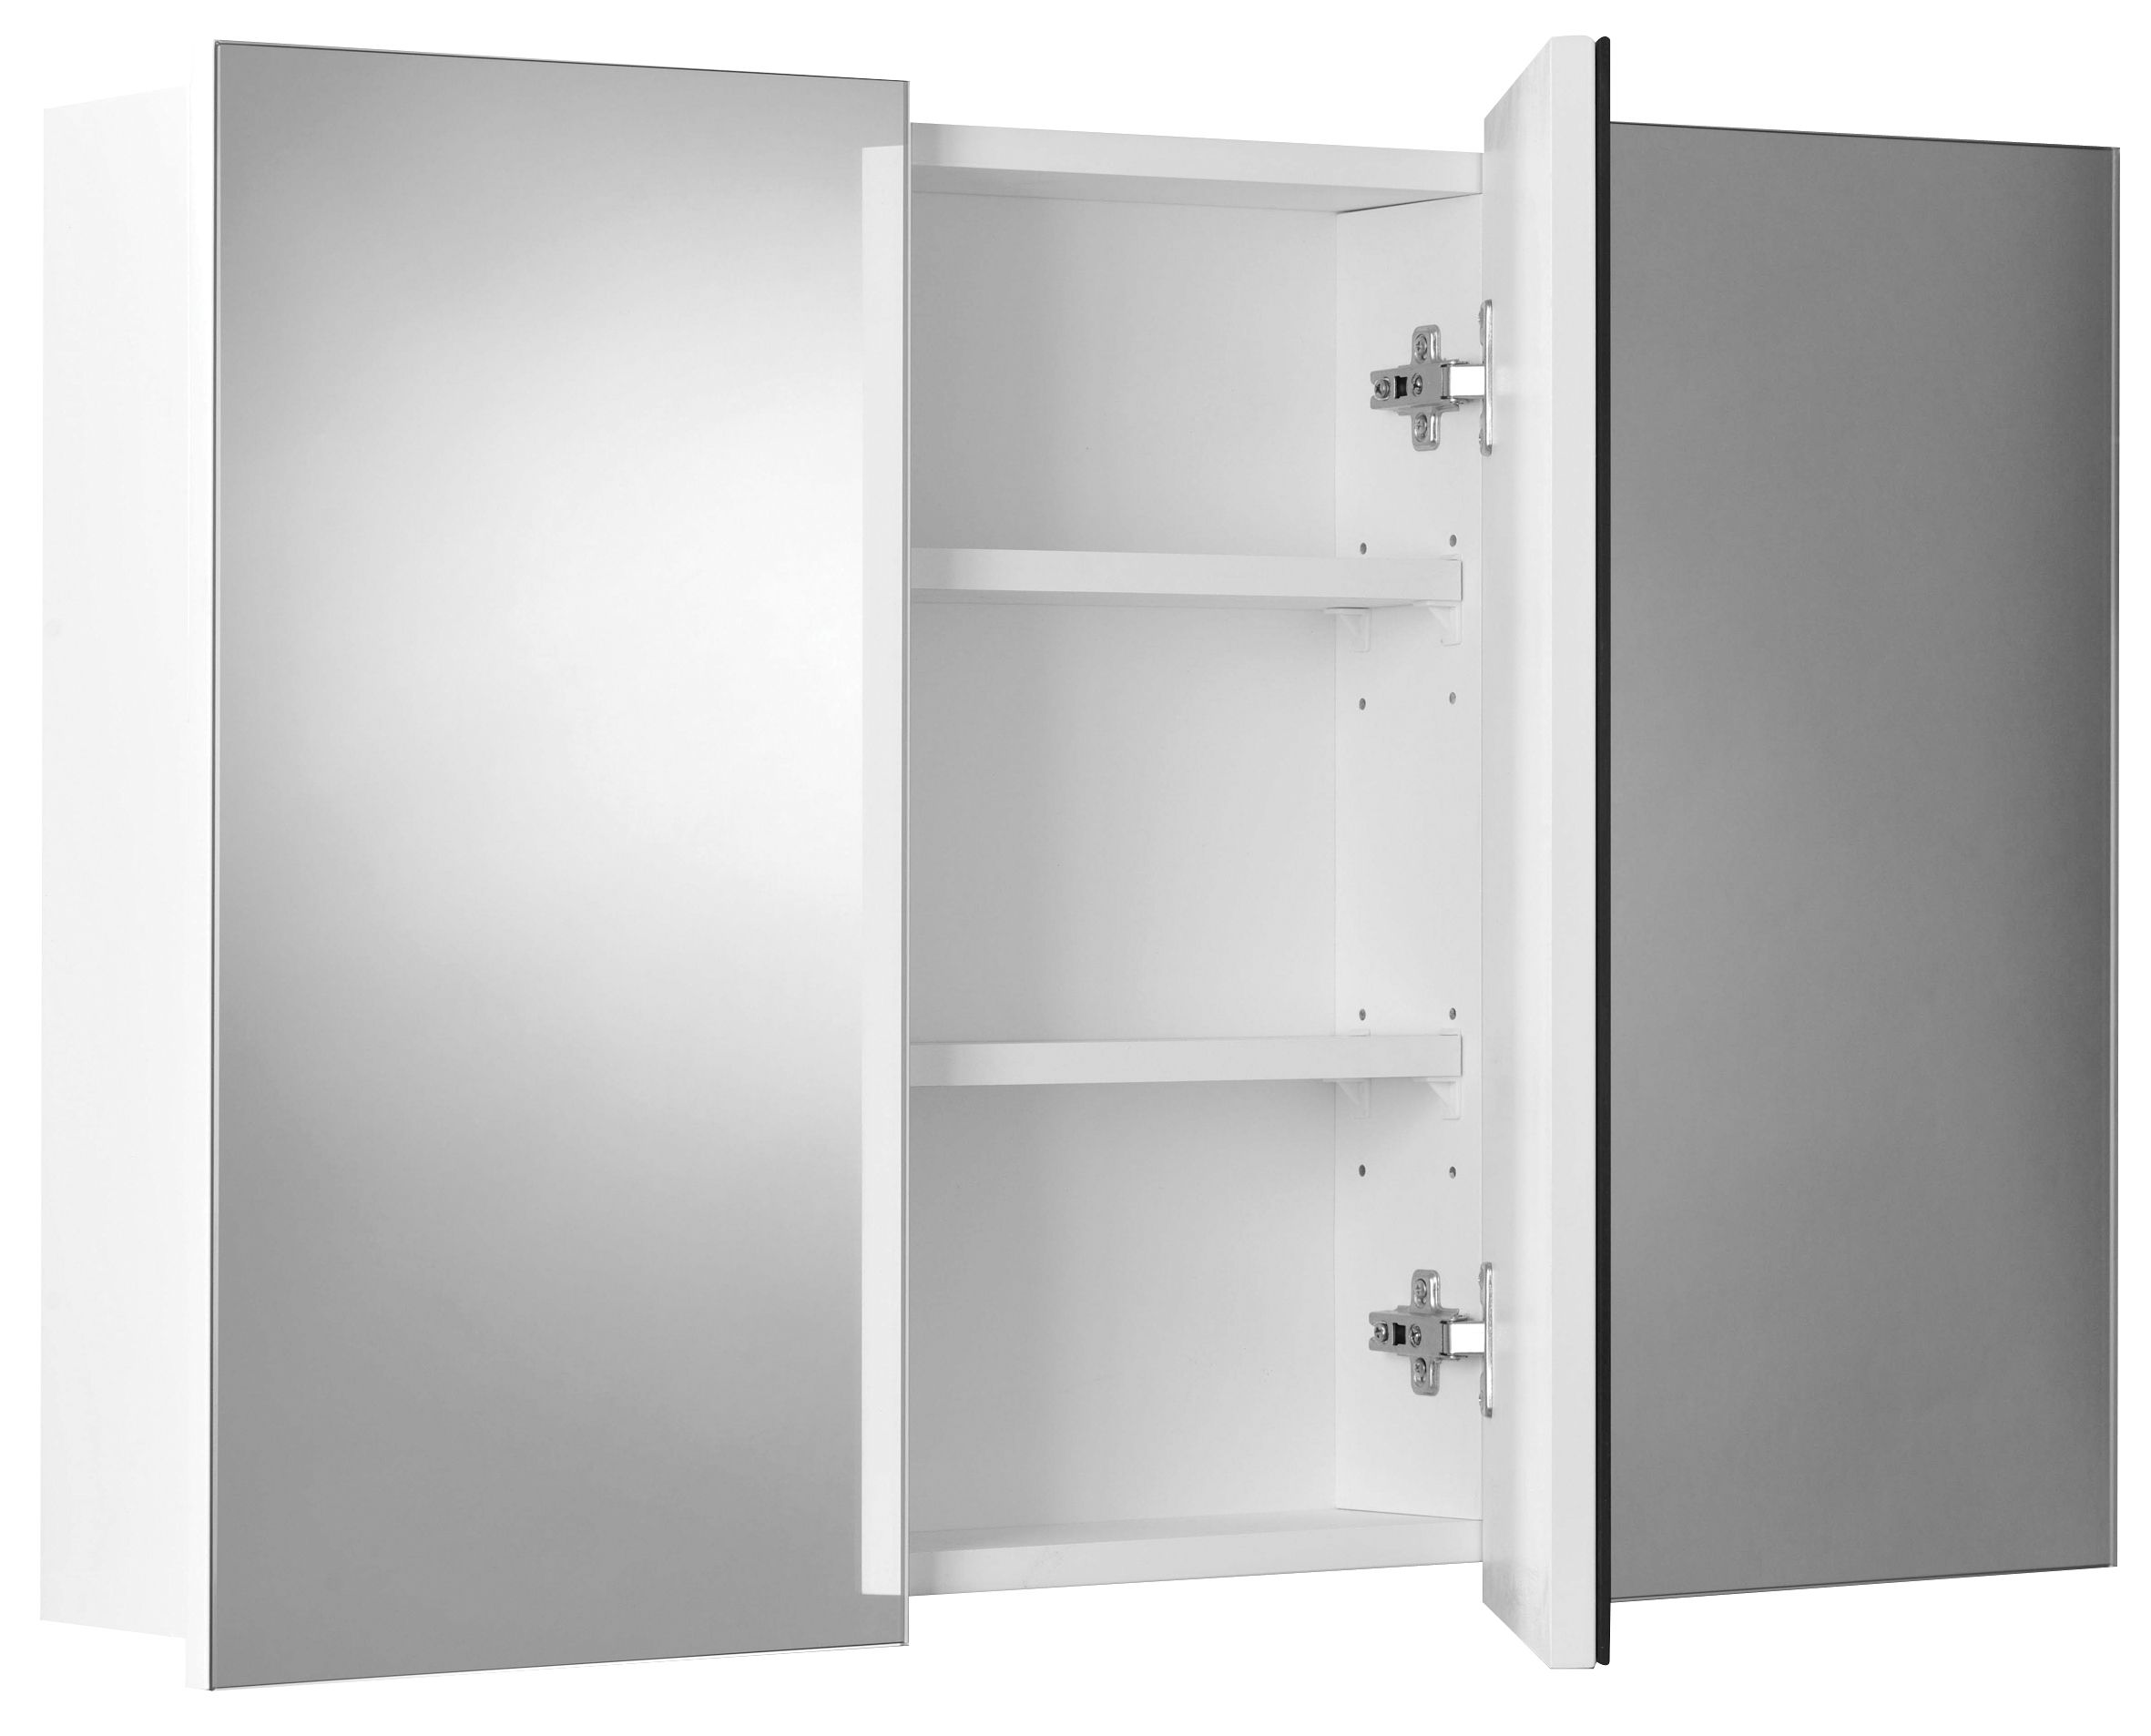 Mirror Door Bathroom Cabinet | http://drrw.us | Pinterest | Bathroom ...